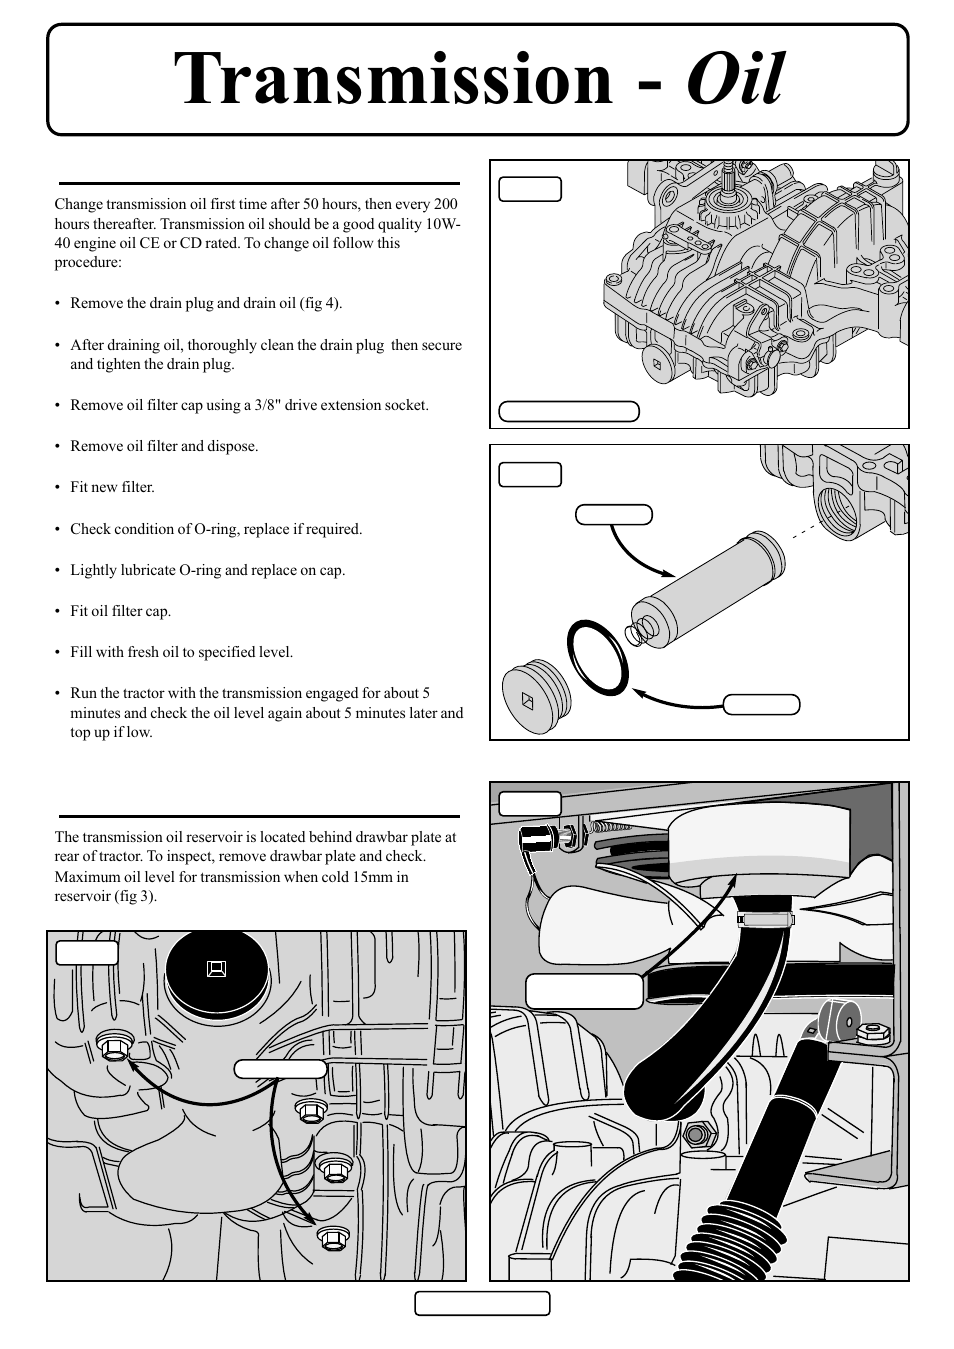 Transmission - oil   Countax D50 User Manual   Page 22 / 24